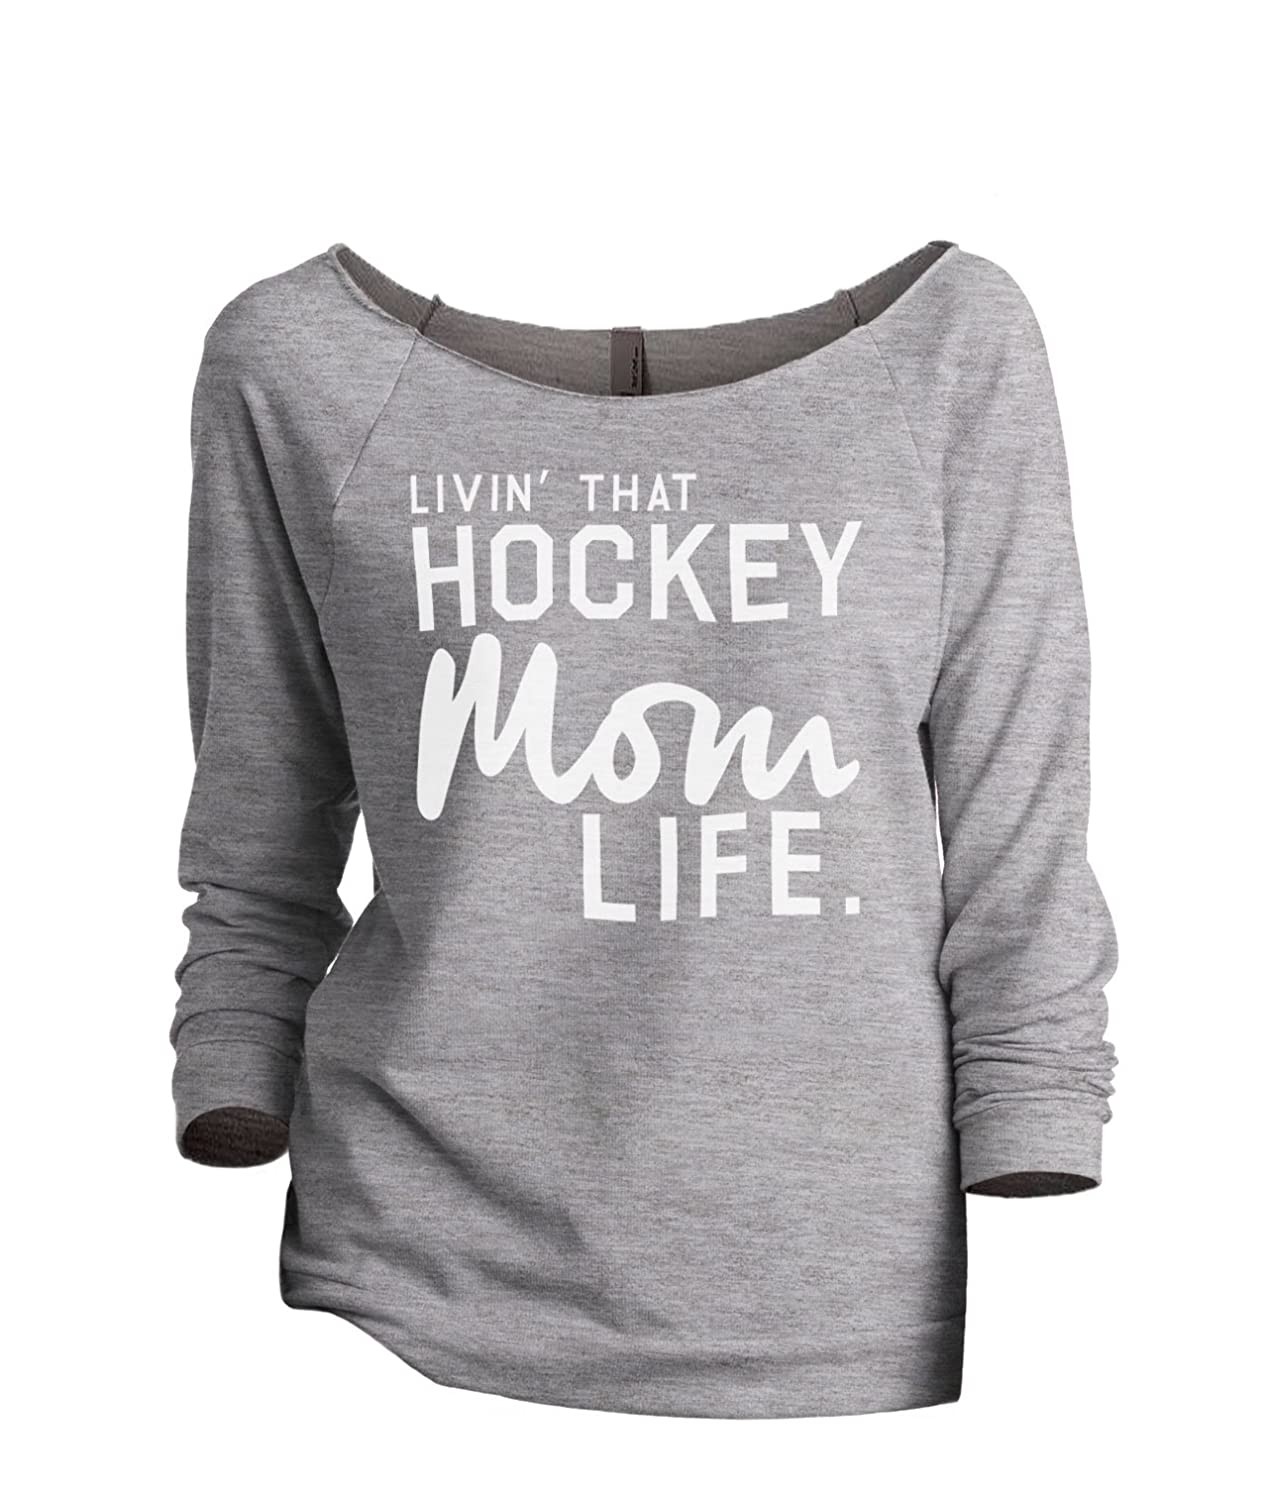 Thread Tank Livin' That Hockey Mom Life Women's Fashion Slouchy...